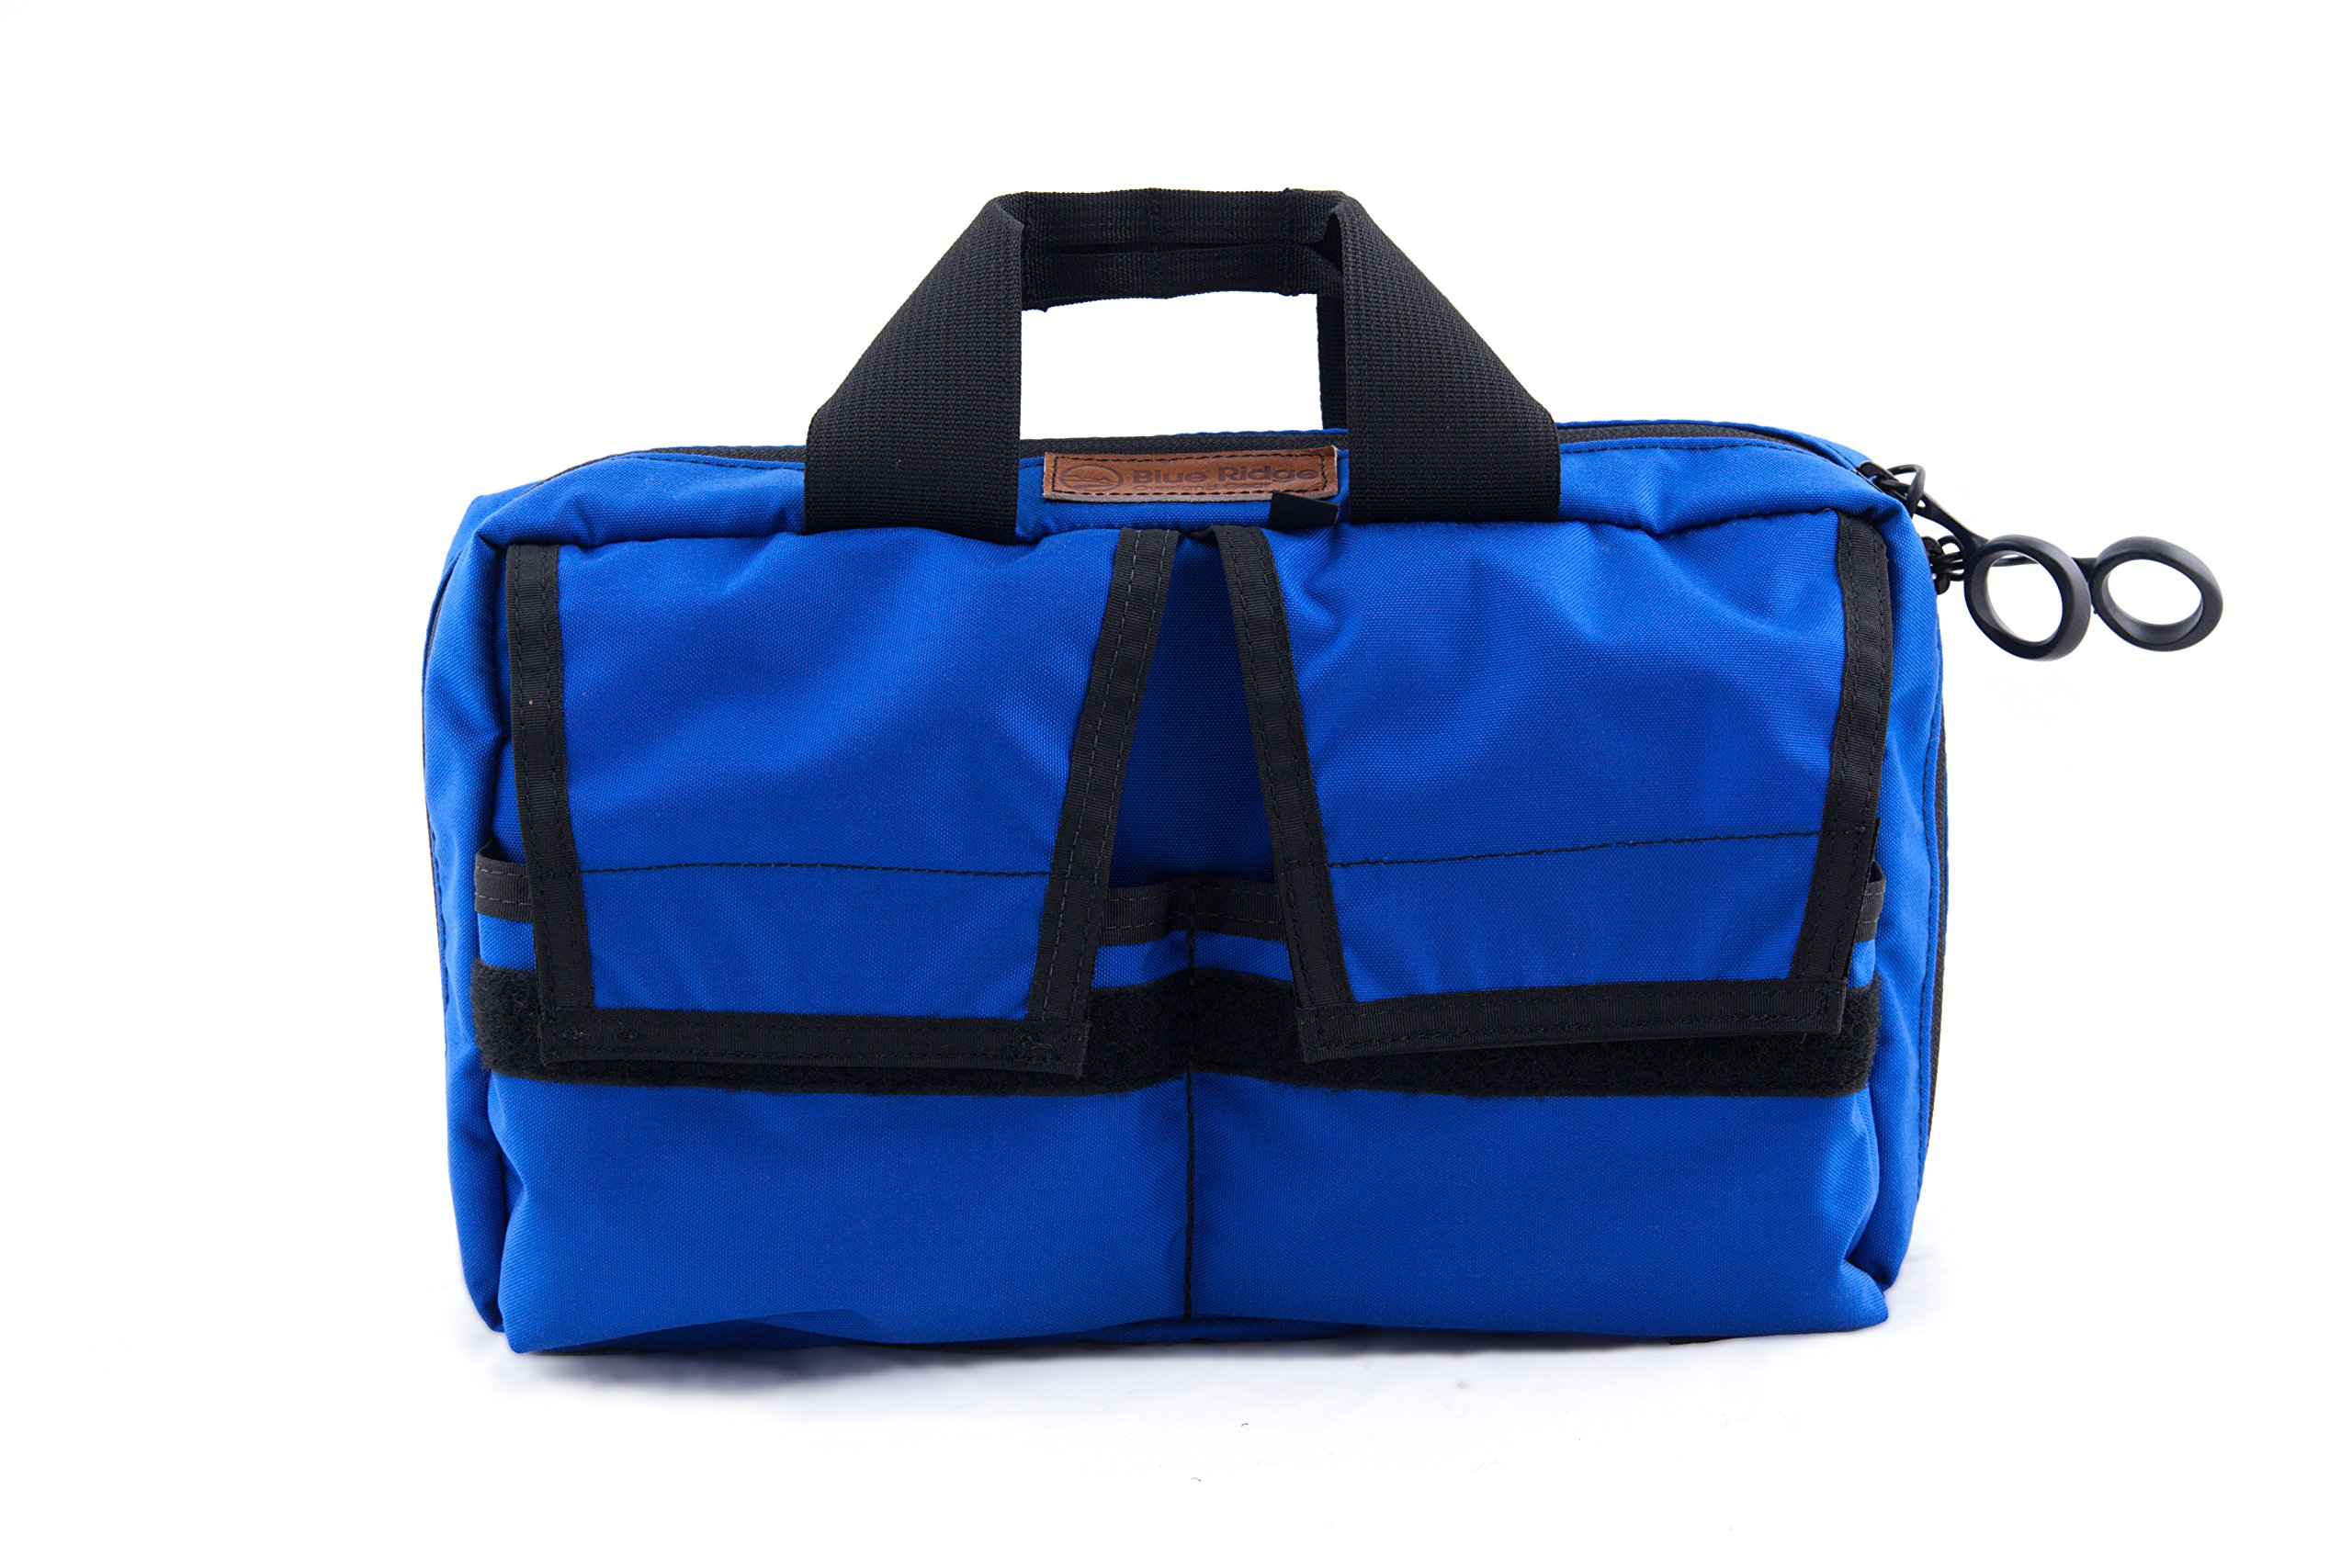 Off Road Air Tools Bag (Blue) | Made In USA, Overland Off-Road Car Camping Gear